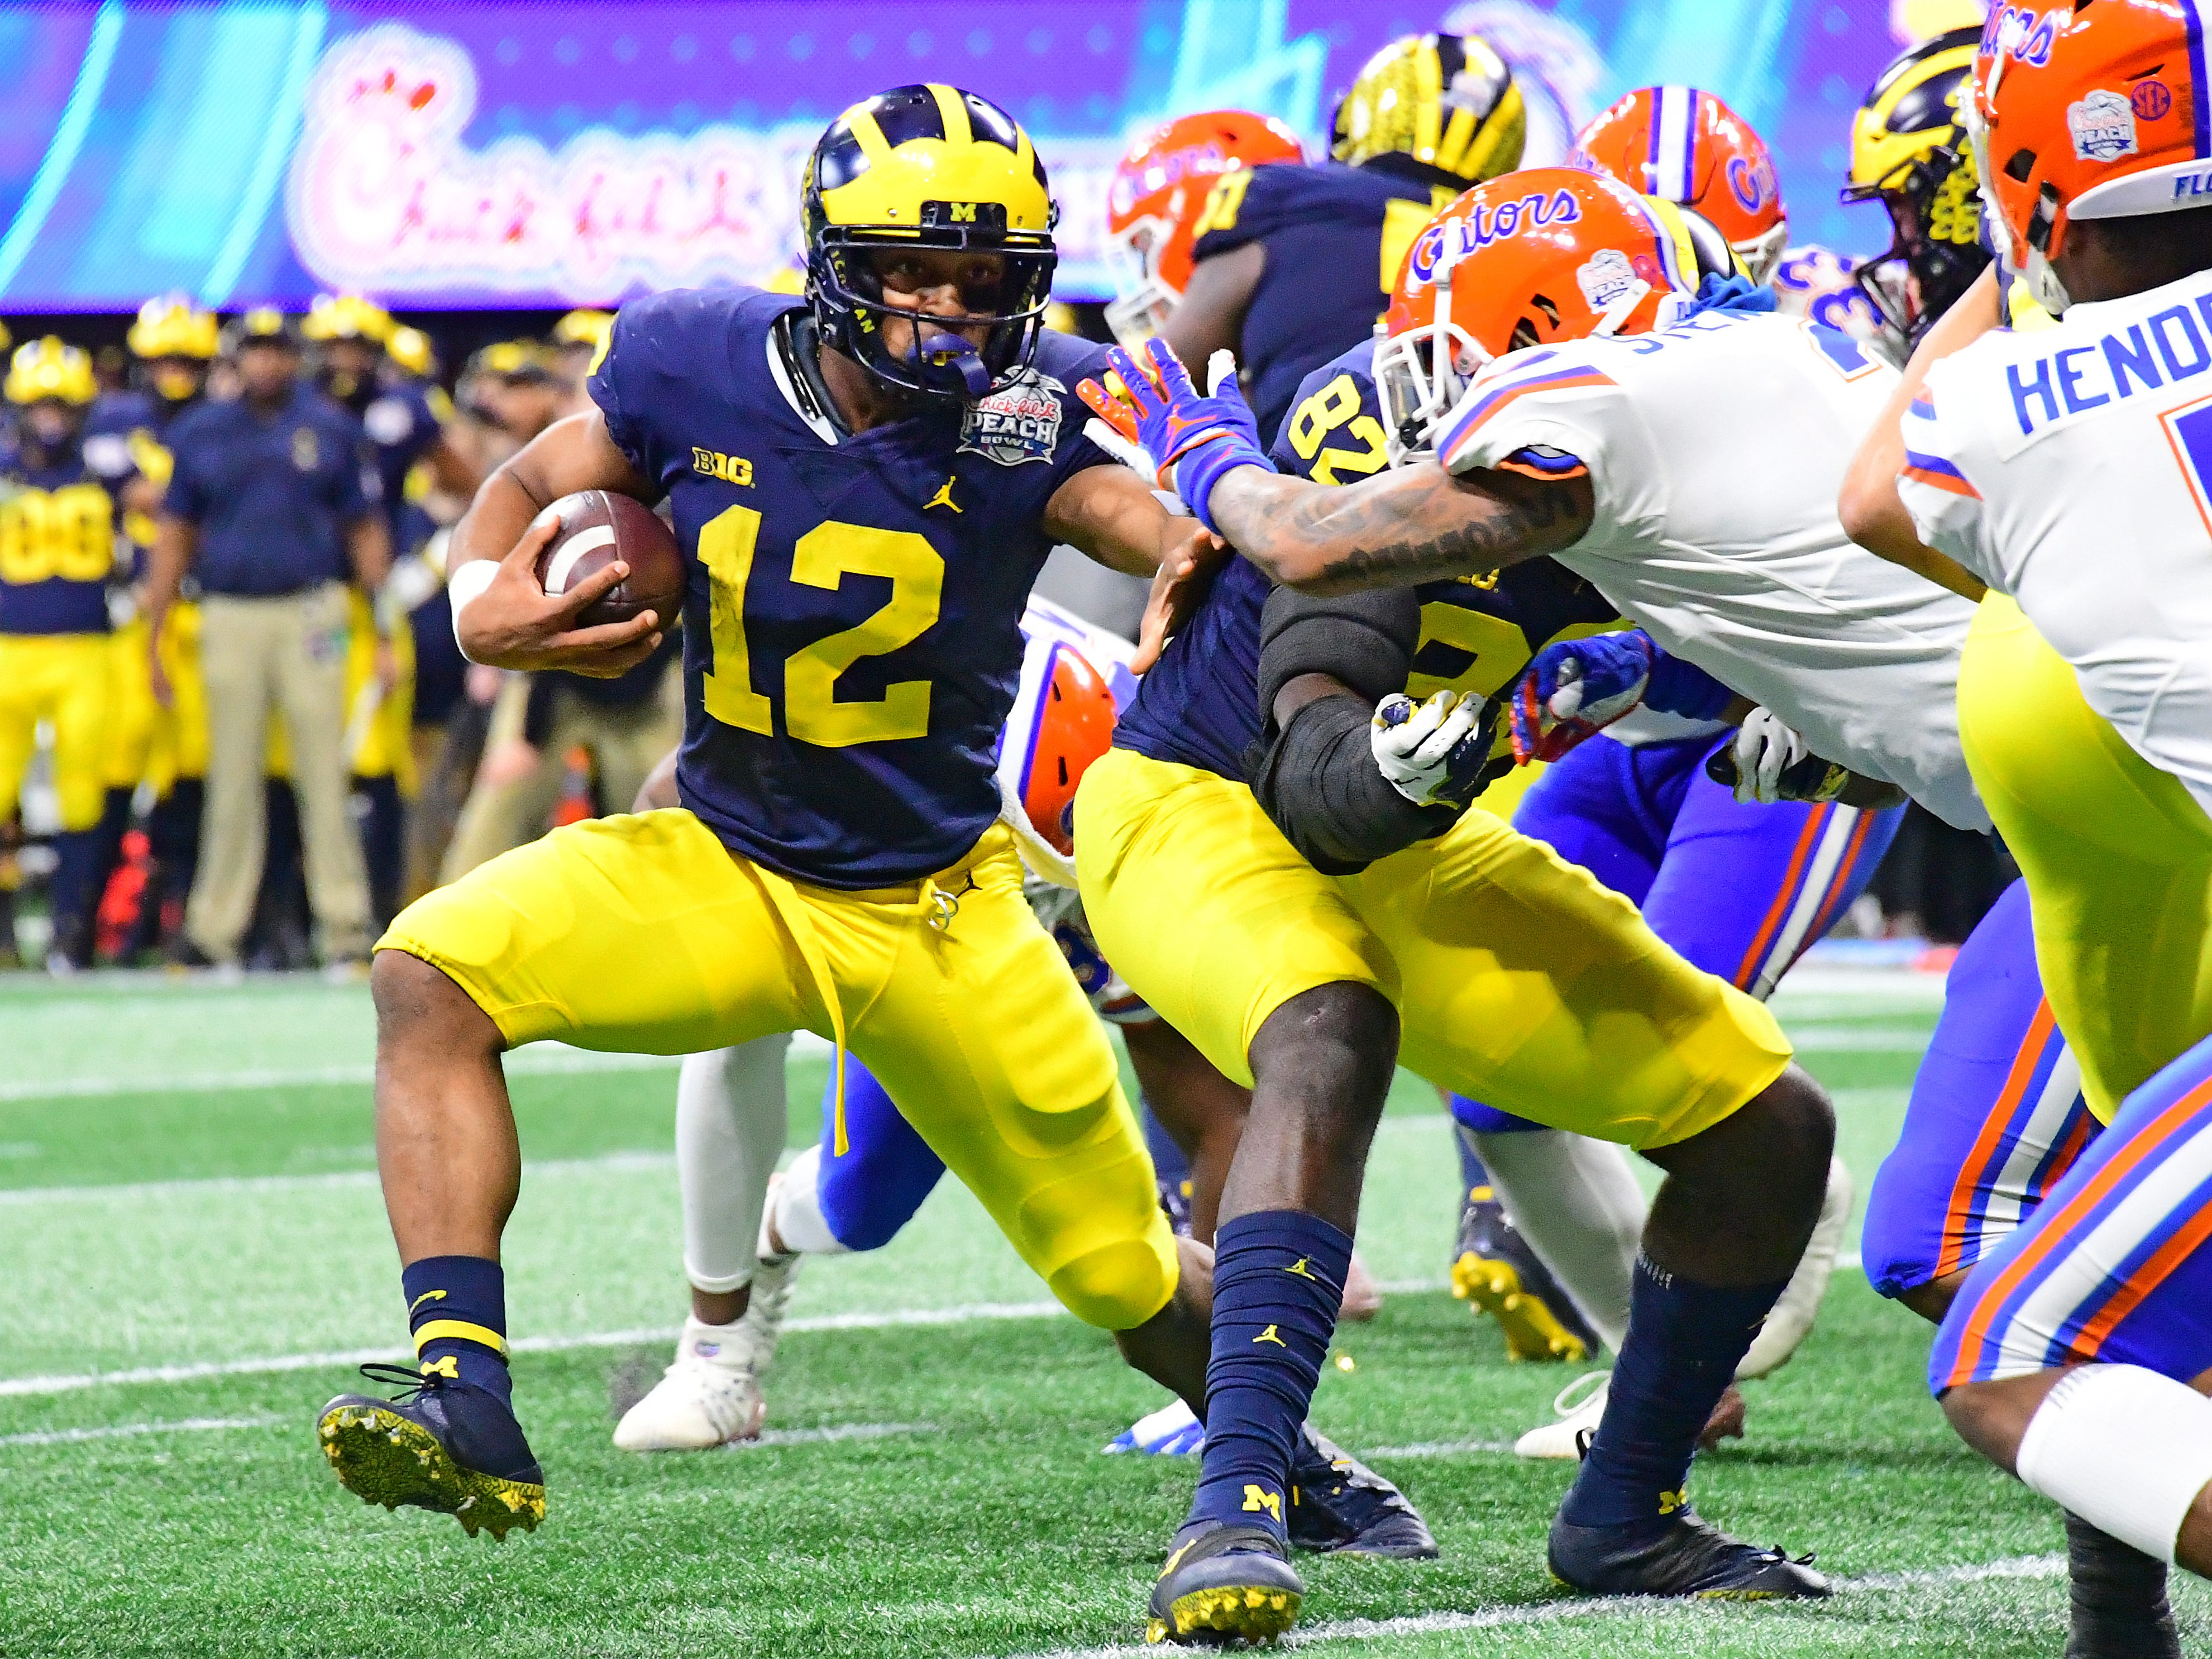 Michigan Wolverines' Chris Evans runs the ball against the Florida Gators in the fourth quarter of the Peach Bowl at Mercedes-Benz Stadium on Dec. 29, 2018 in Atlanta.